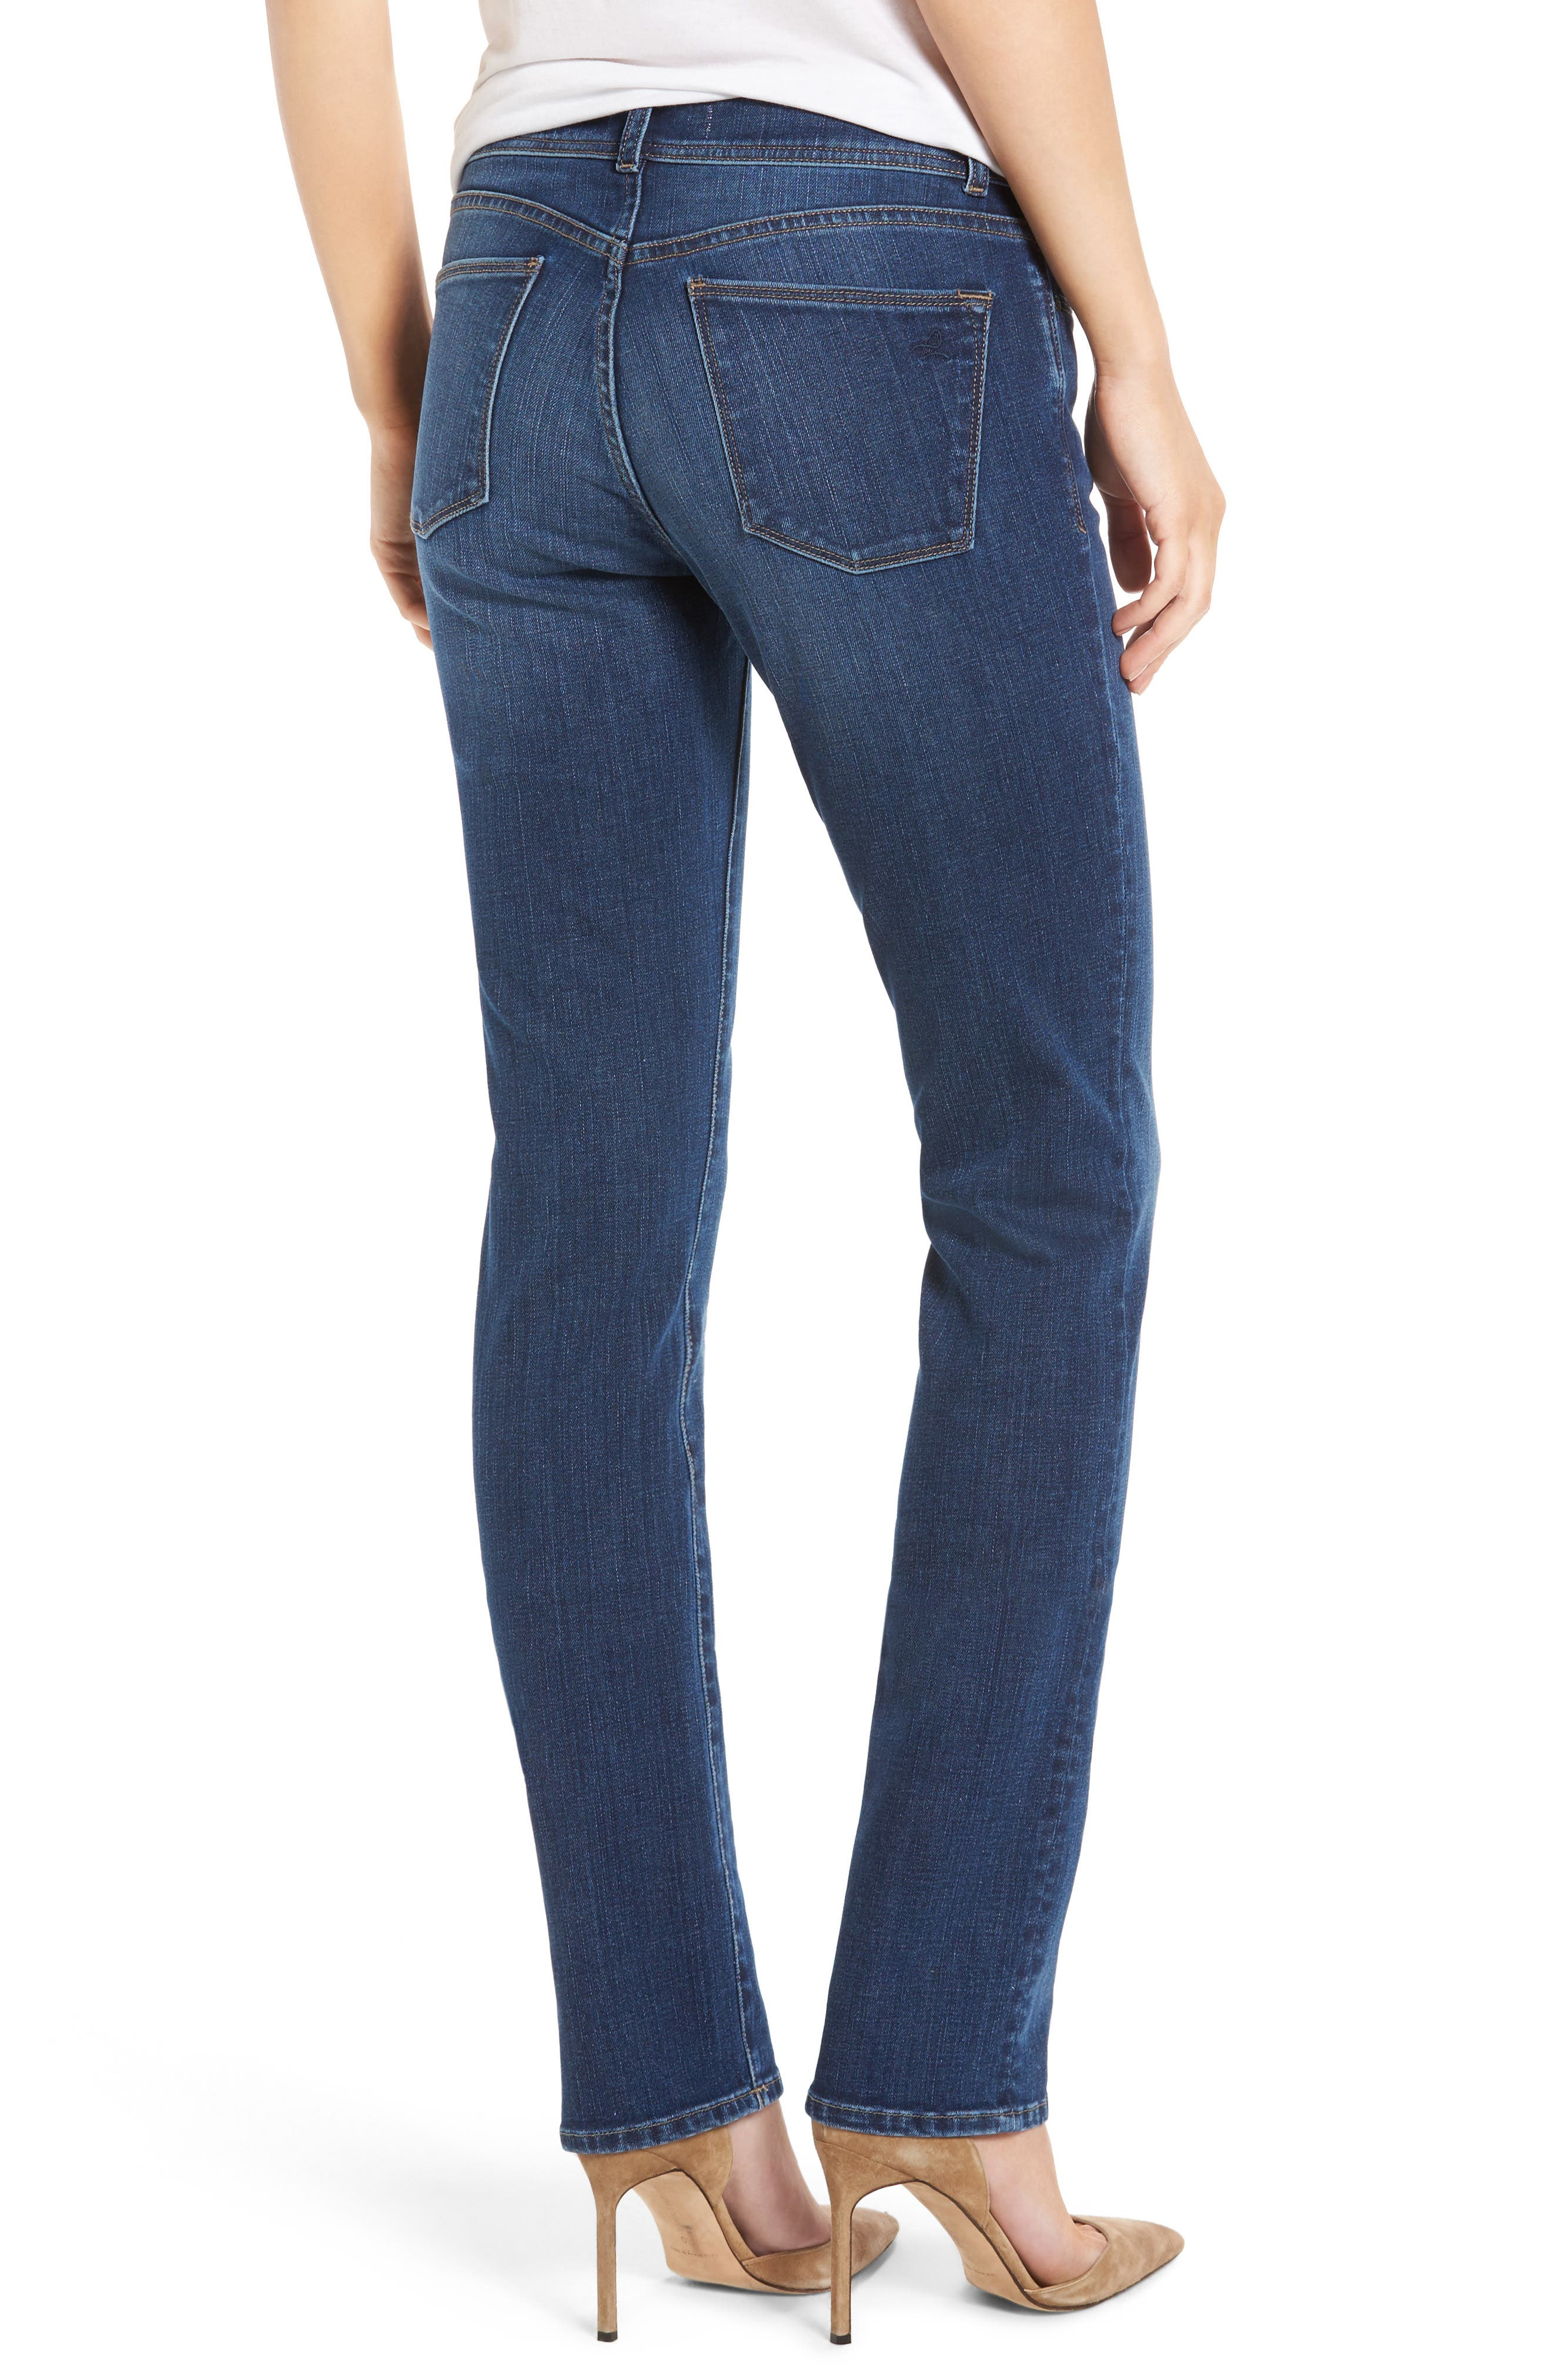 Coco Curvy Straight Leg Jeans,                             Alternate thumbnail 2, color,                             Pacific